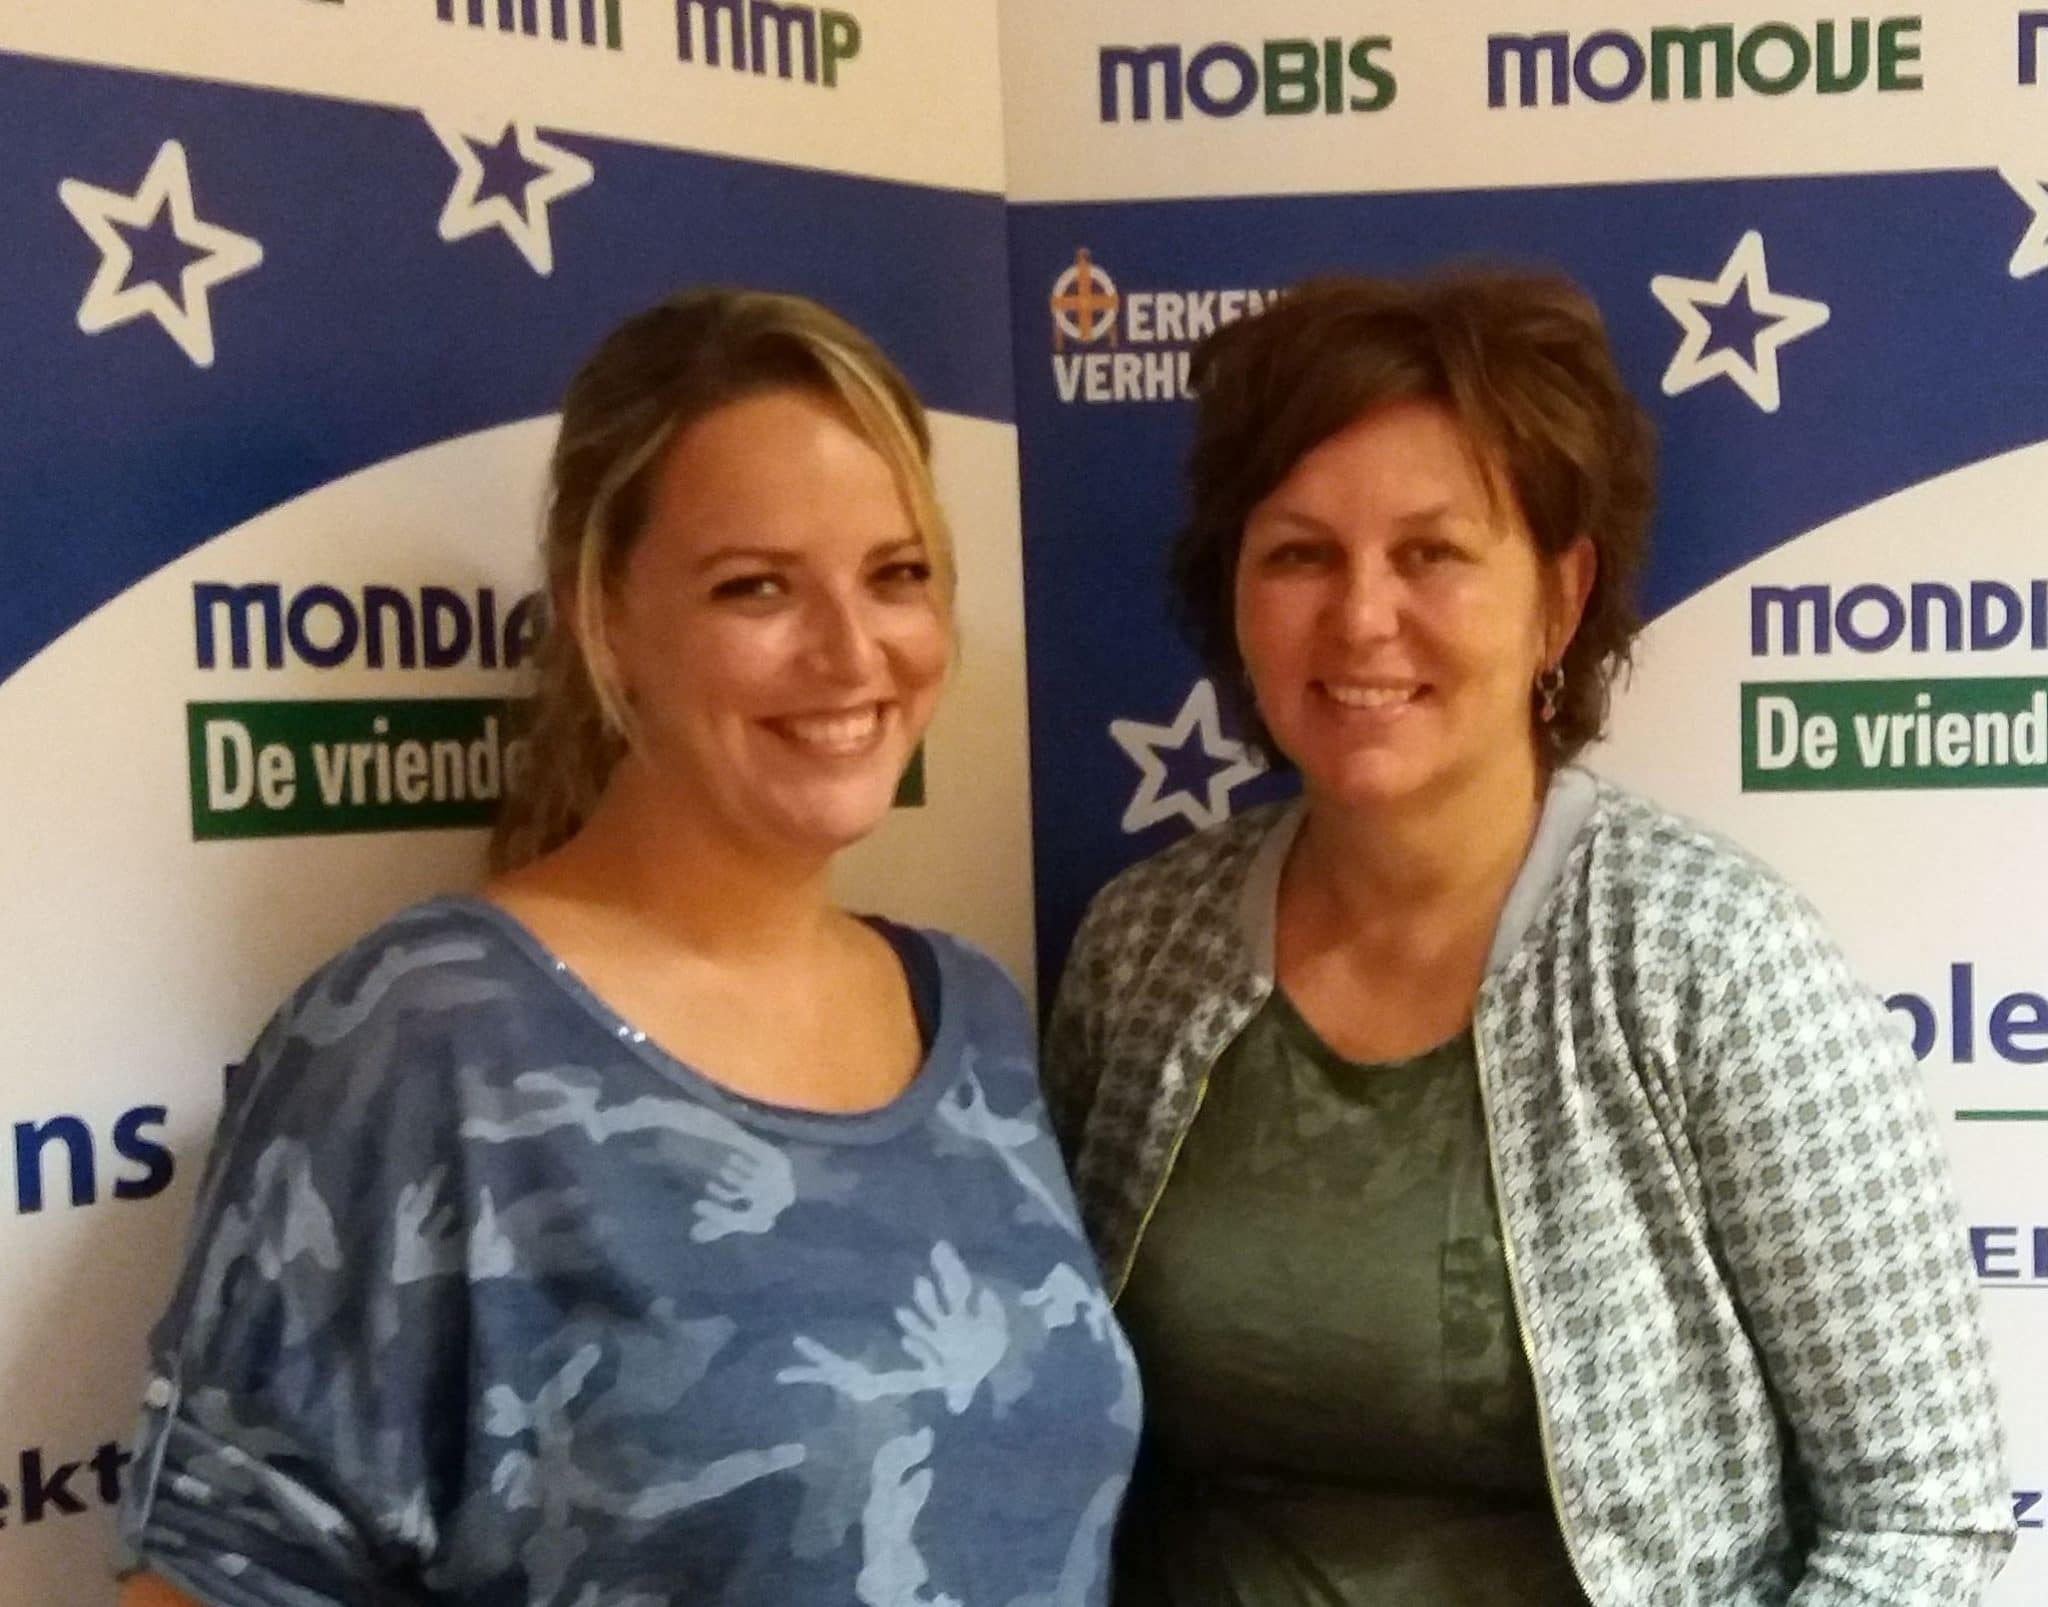 Barbara Monnier Niecky de Liefde Mondial Movers International